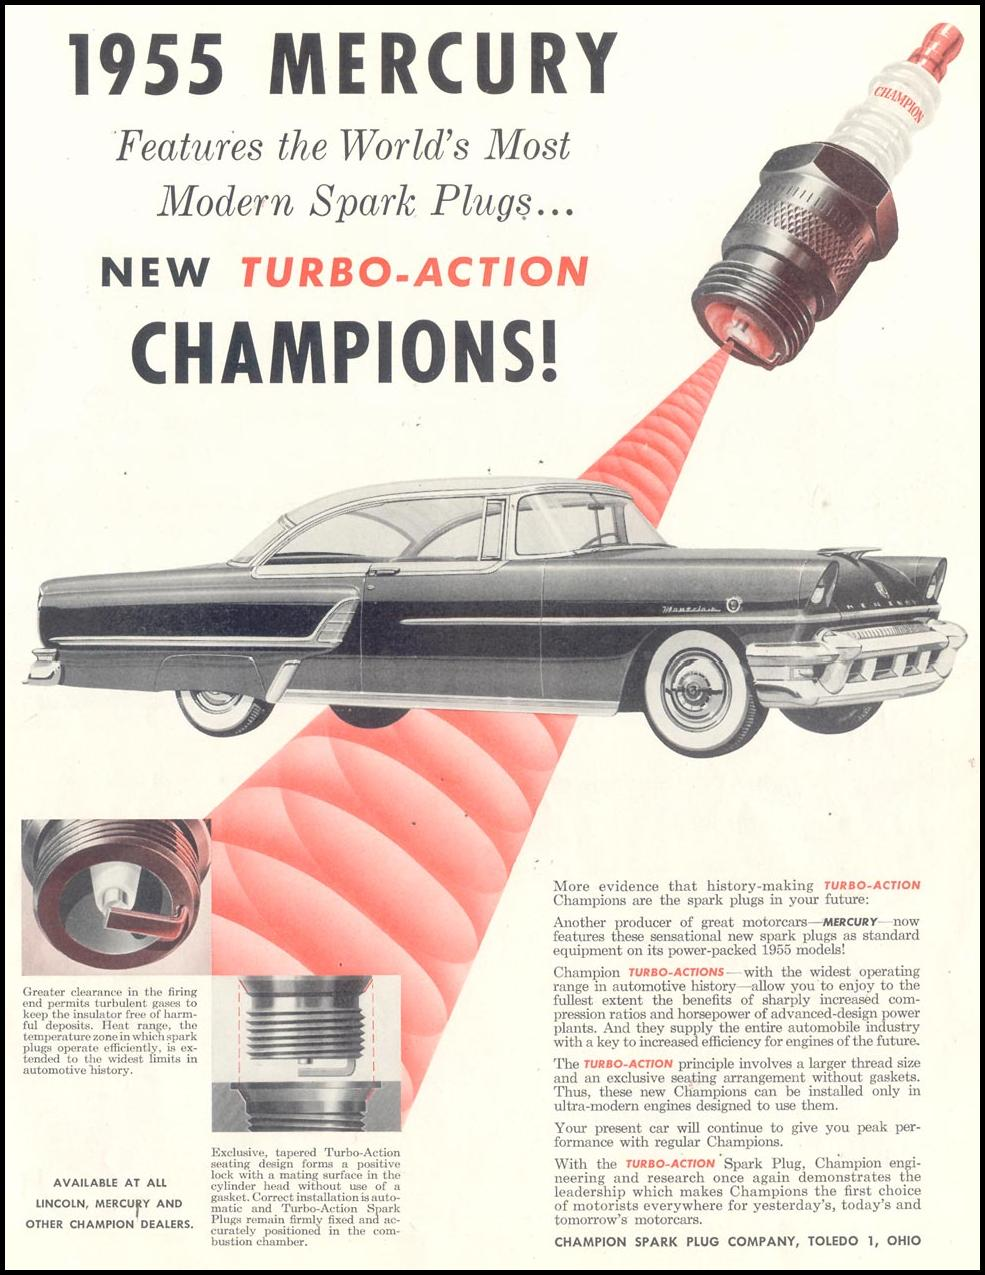 CHAMPION SPARK PLUGS SATURDAY EVENING POST 02/05/1955